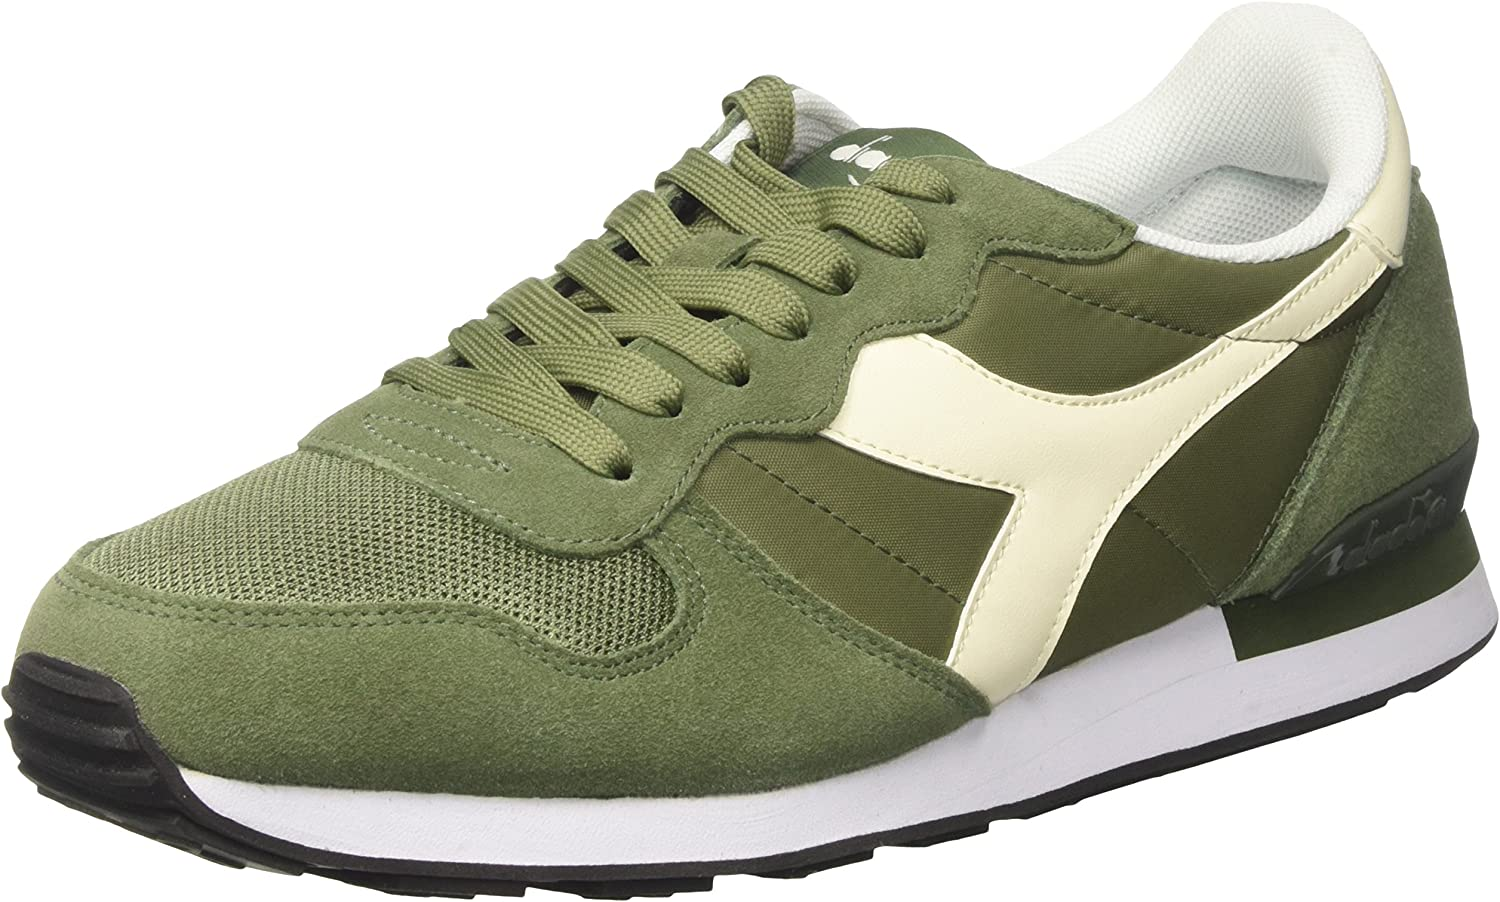 Diadora shoes – Camaro Green Off-White Size  40